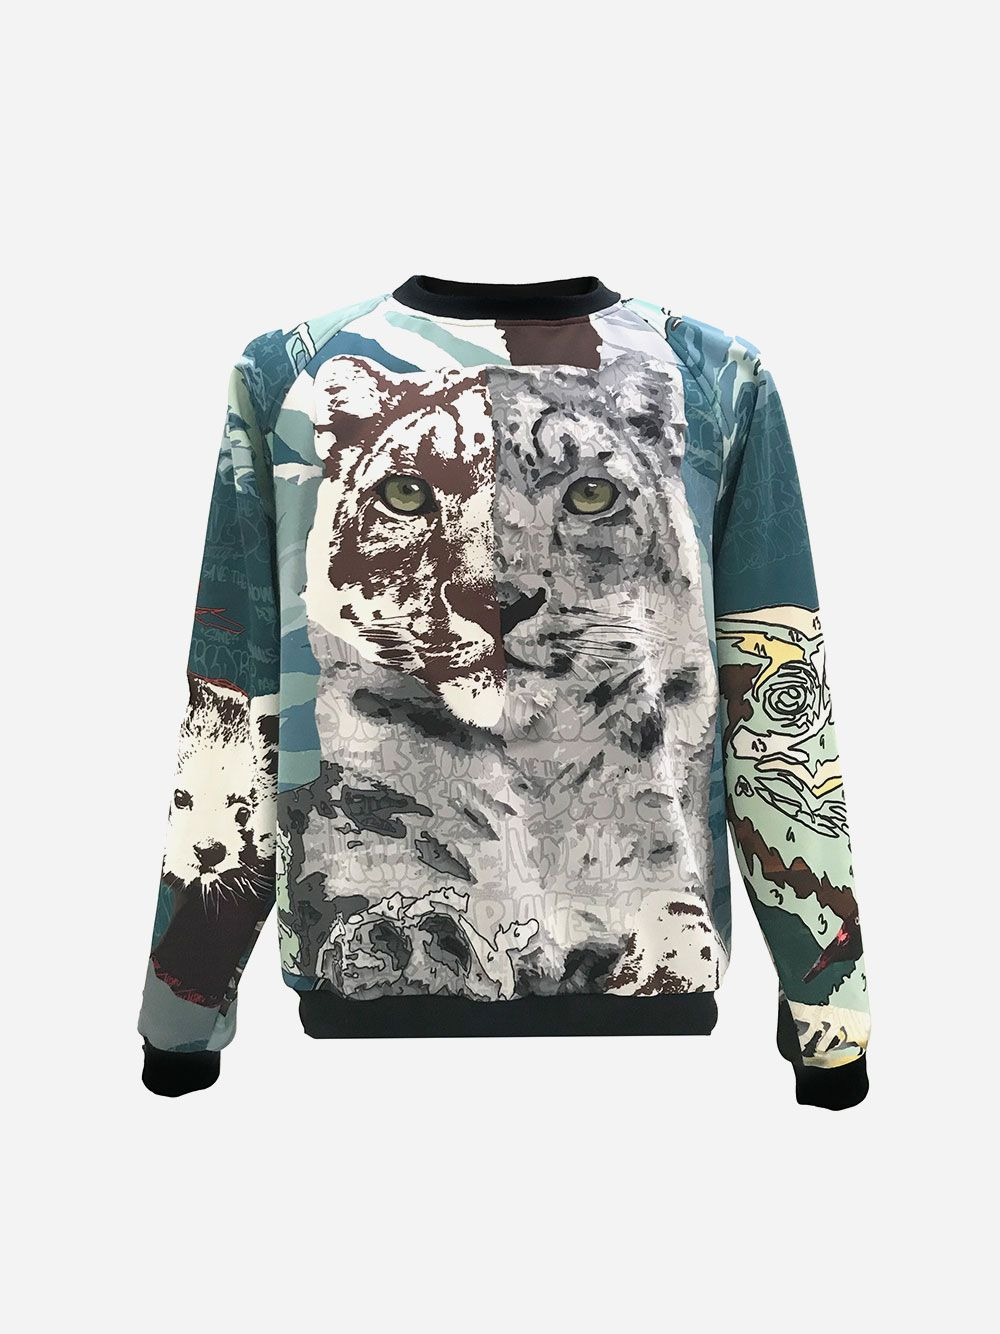 Sweatshirt Estampada Extinction | Duarte